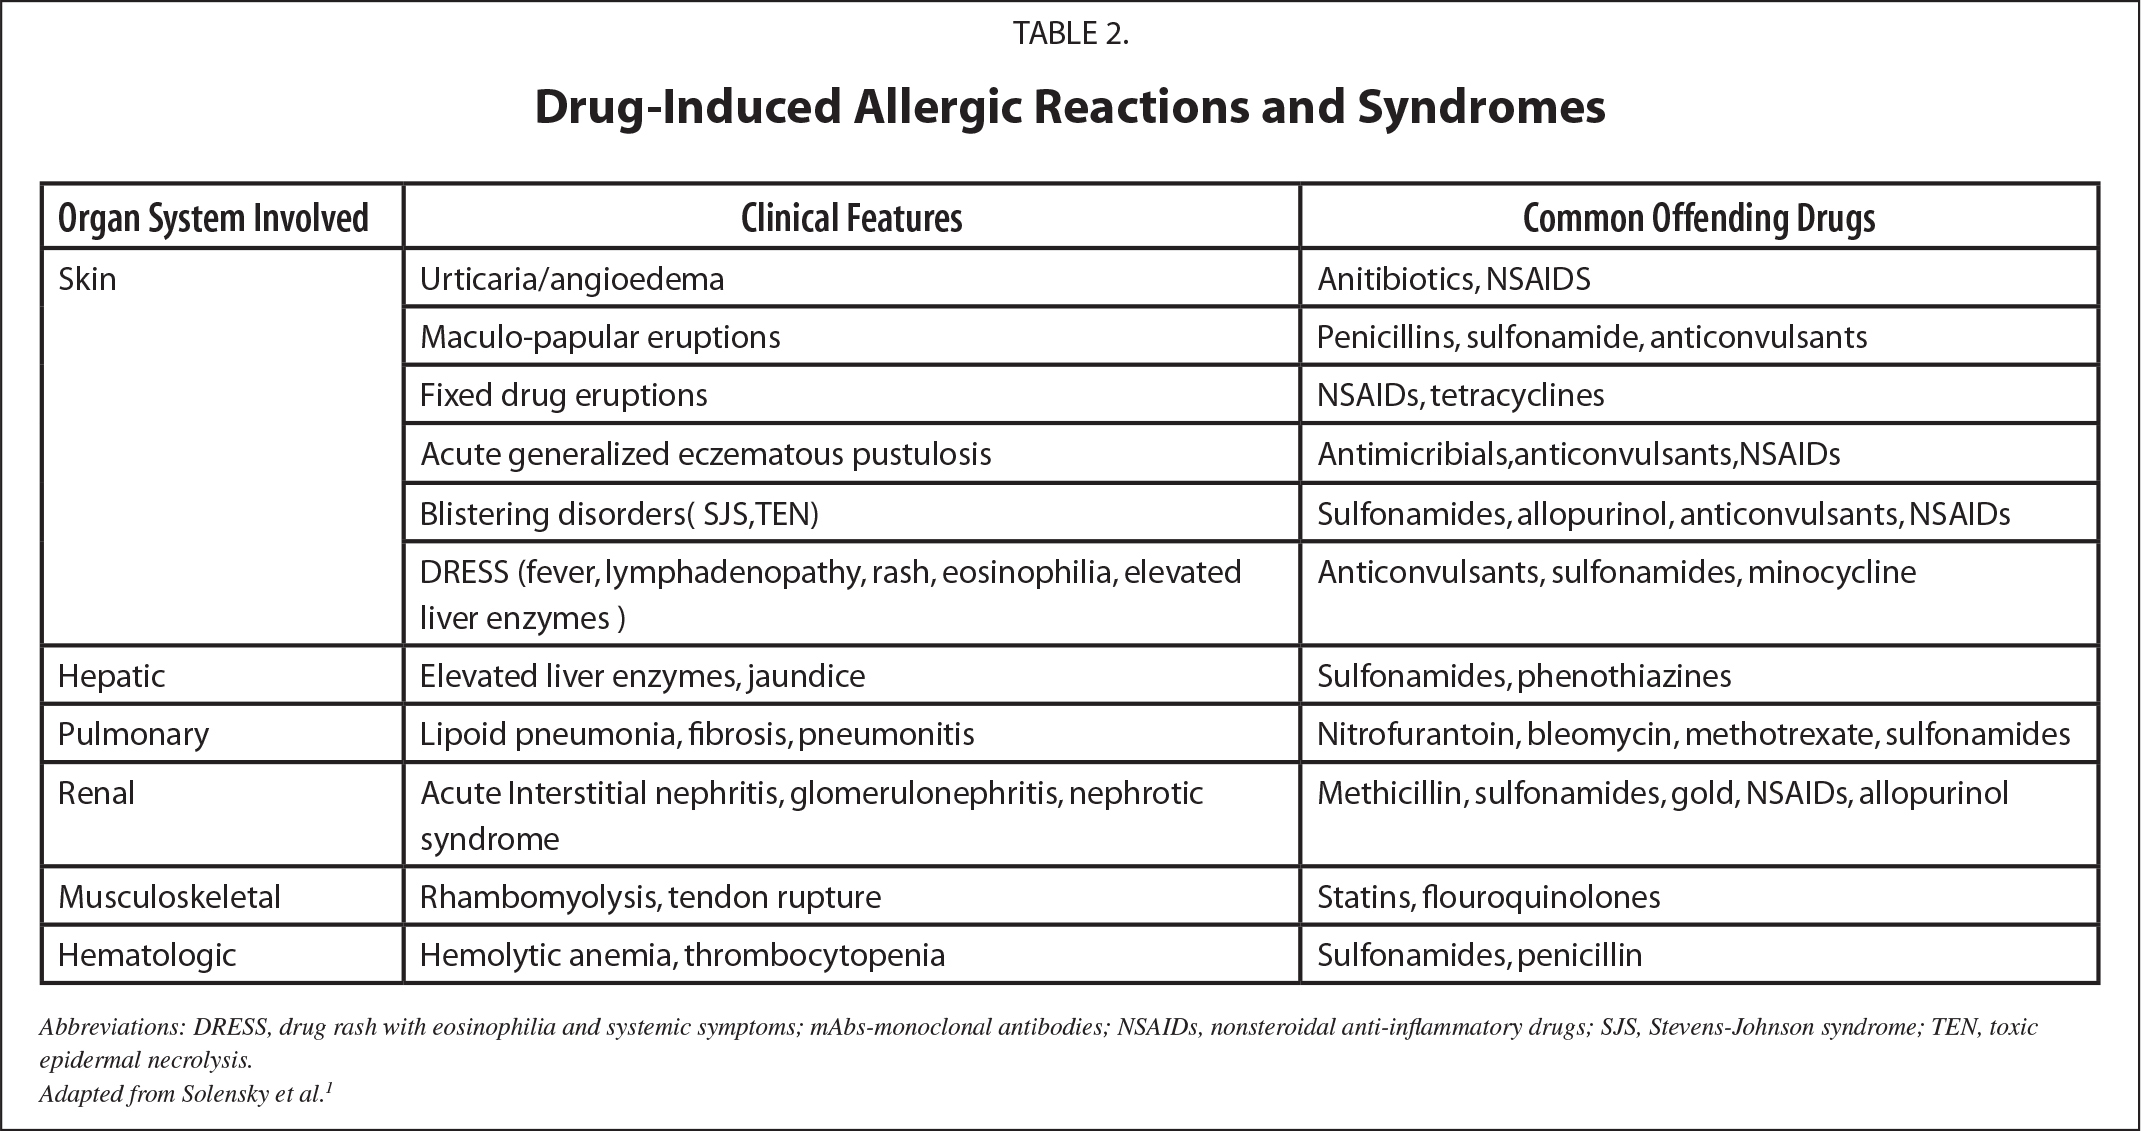 Drug-Induced Allergic Reactions and Syndromes